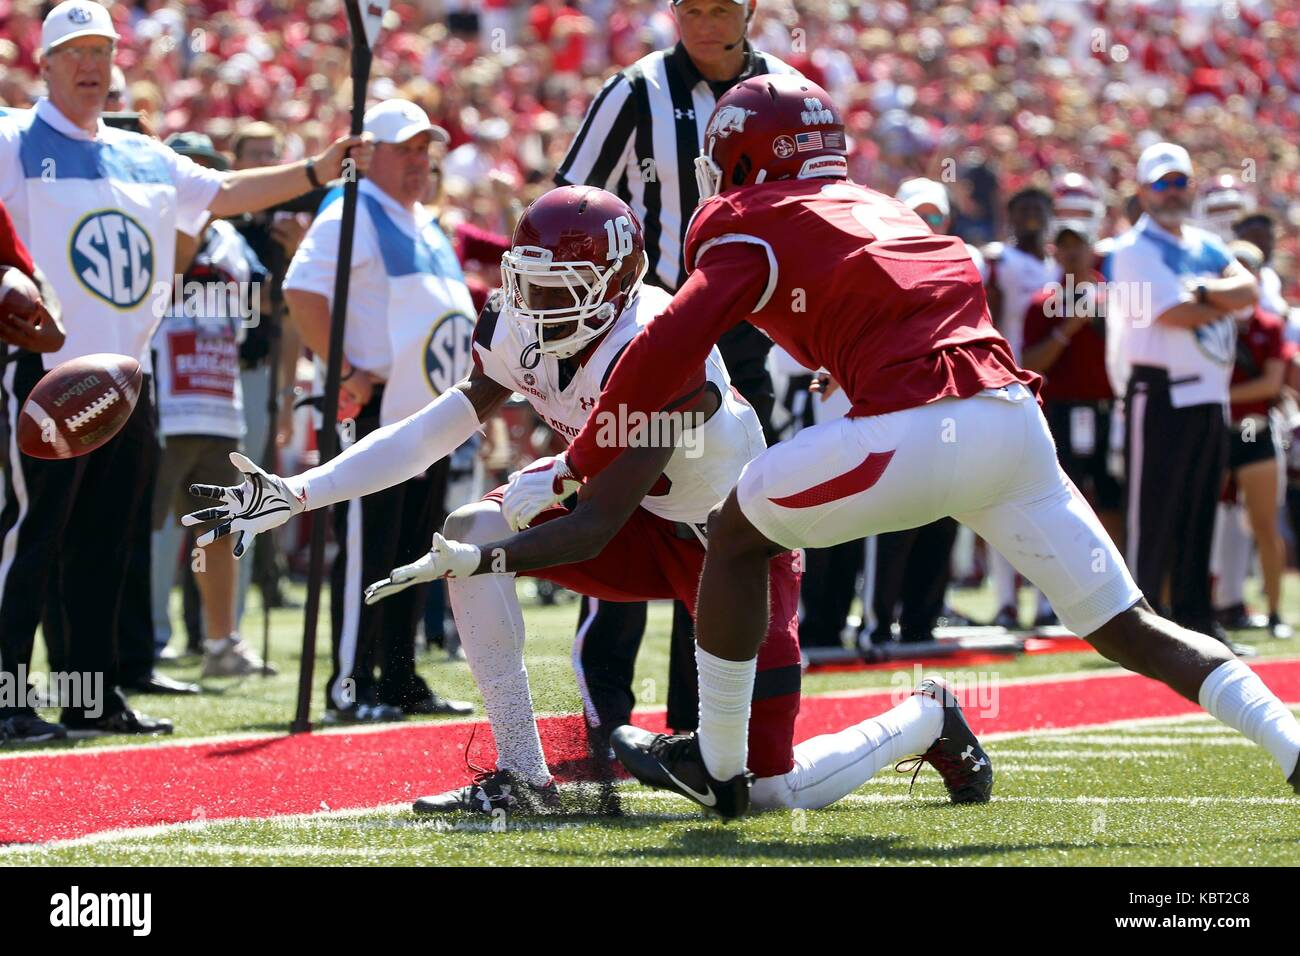 on sale 68b6a 90c5d Sep 30, 2017: Aggies receiver Jaleel Scott #16 attempts to ...